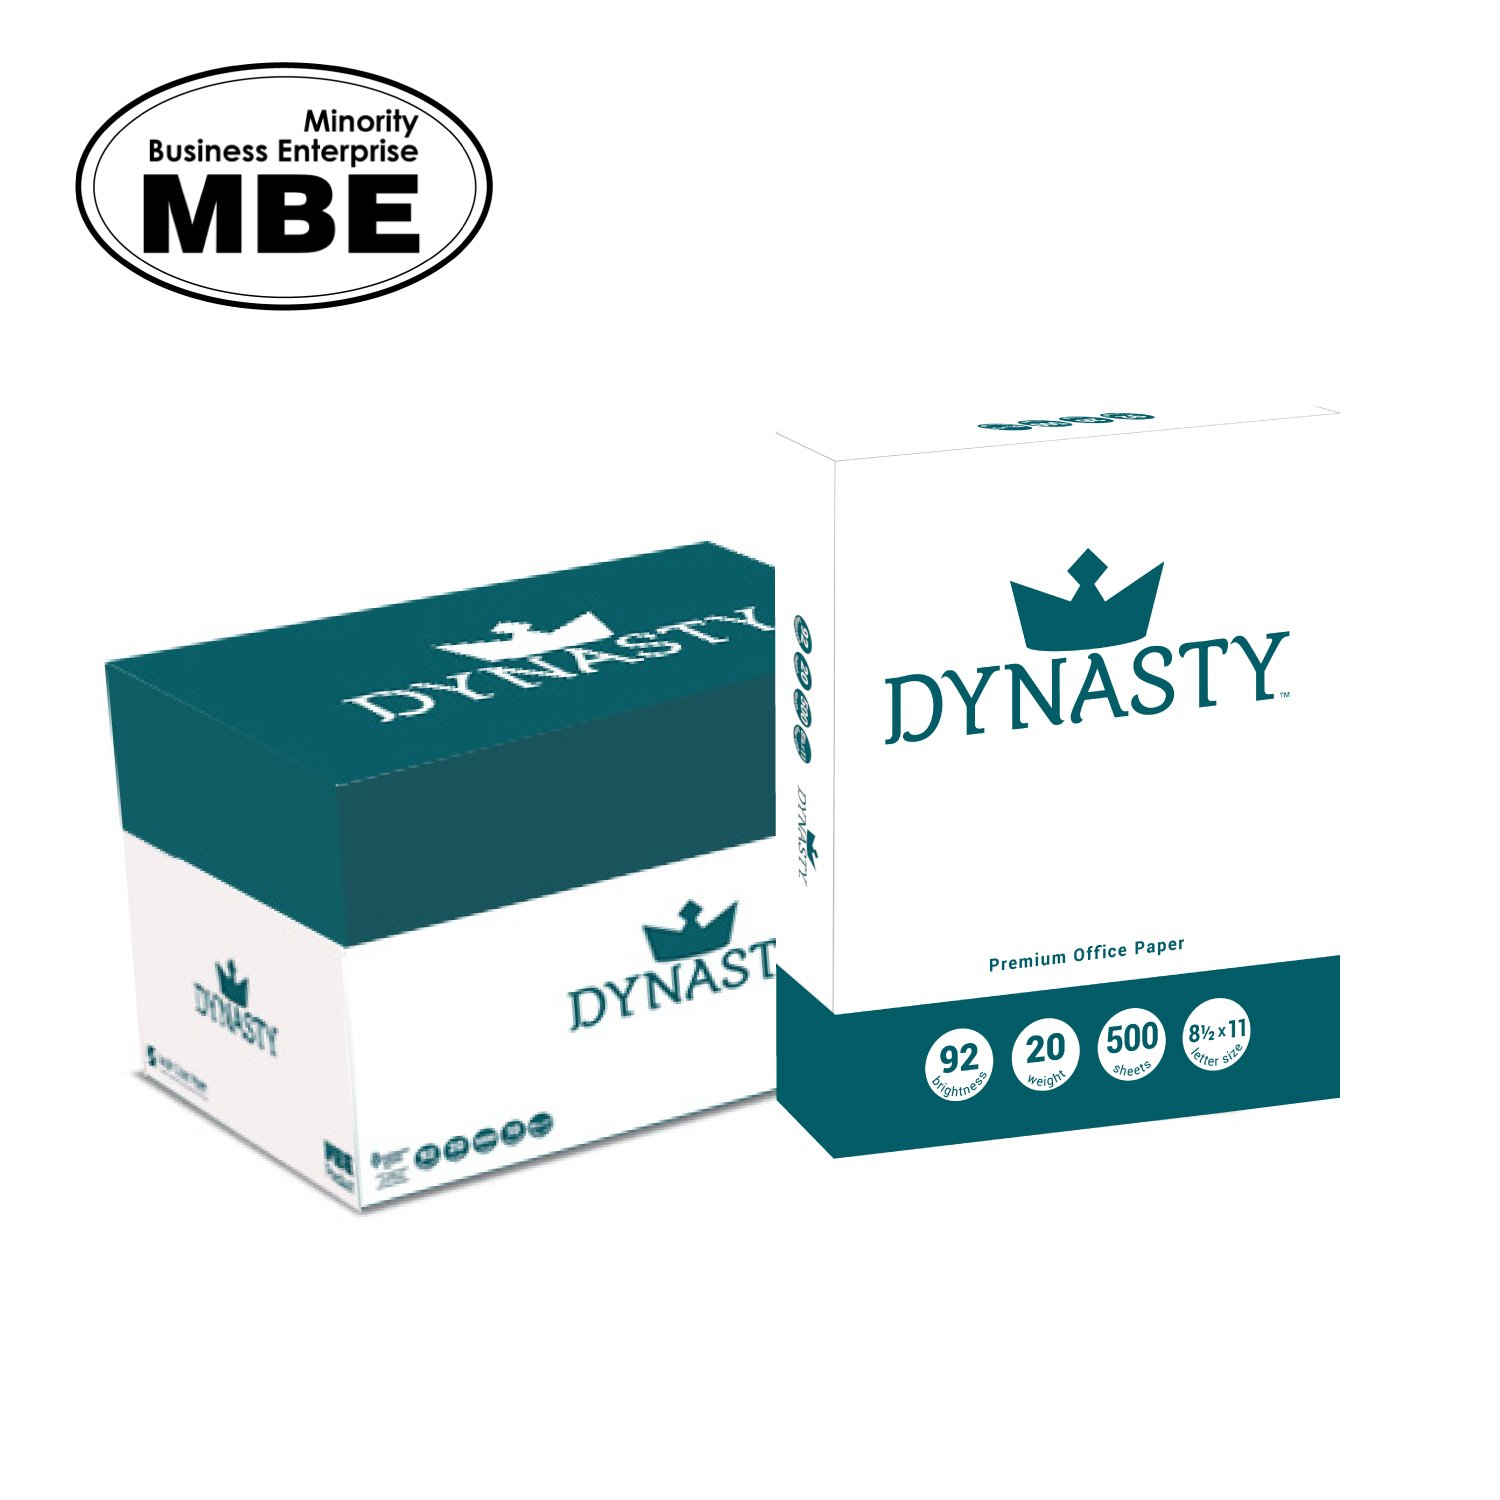 Dynasty Copy Paper, White Paper, 8.5 x 11, Letter, 92 Bright, 10 Reams - Diversity Product, MBE Certified (200550C)